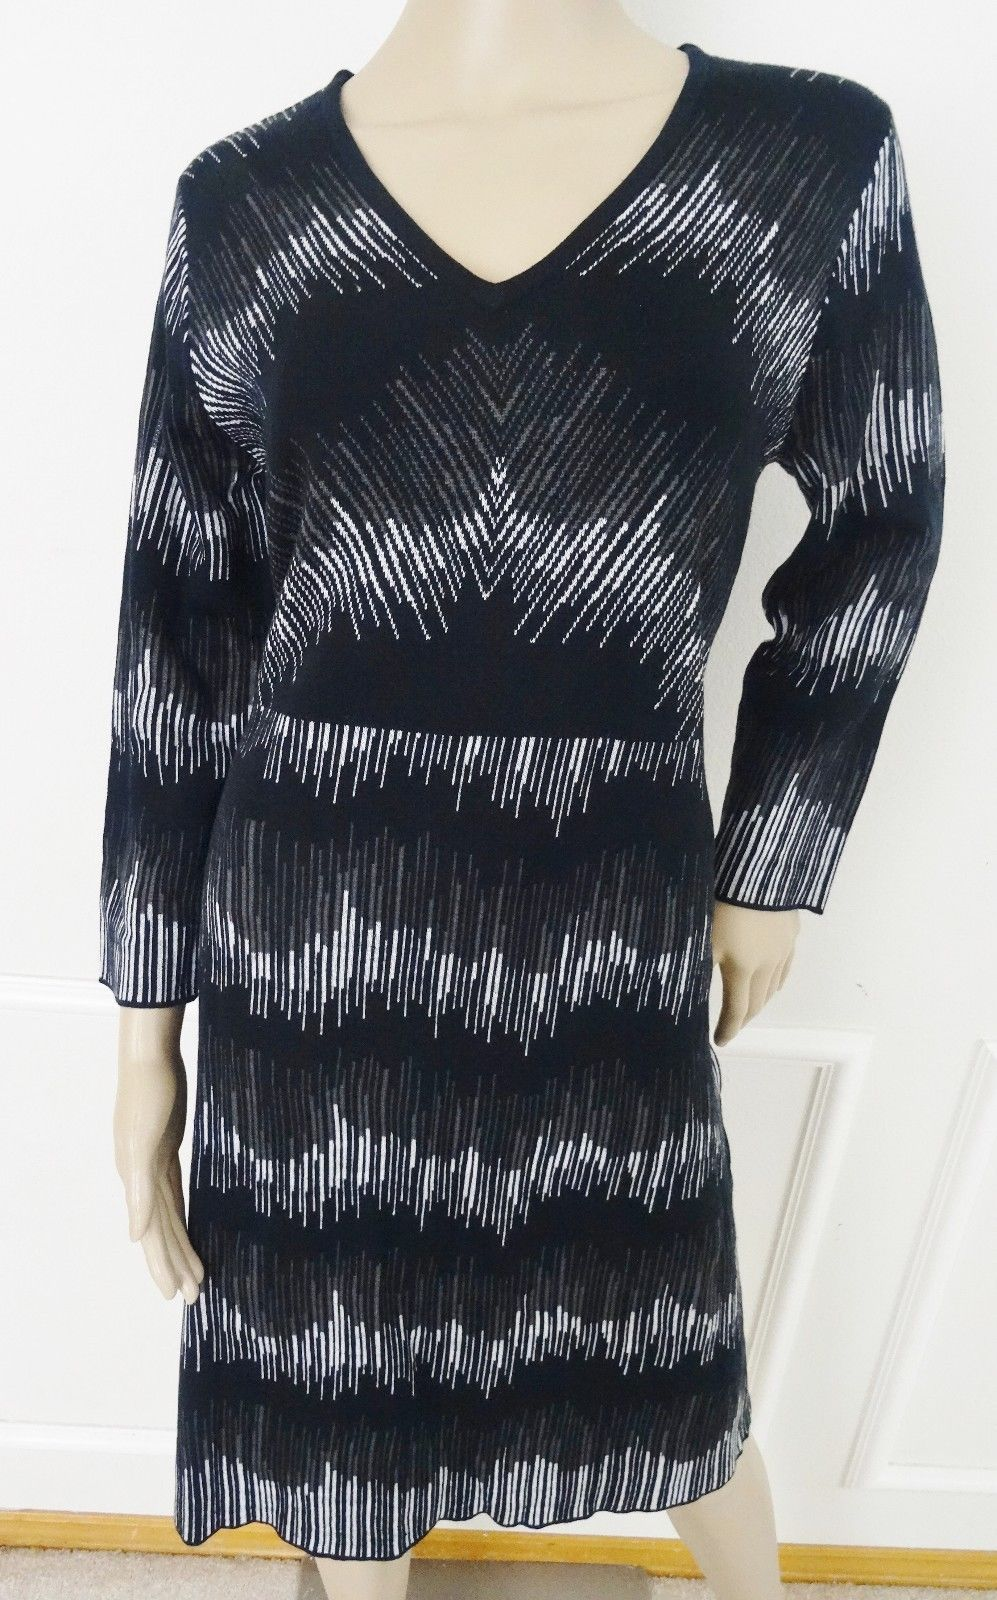 Primary image for Nwt Anne Klein V neck Flare Work Sweater Dress Sz L Large Black White Print $129